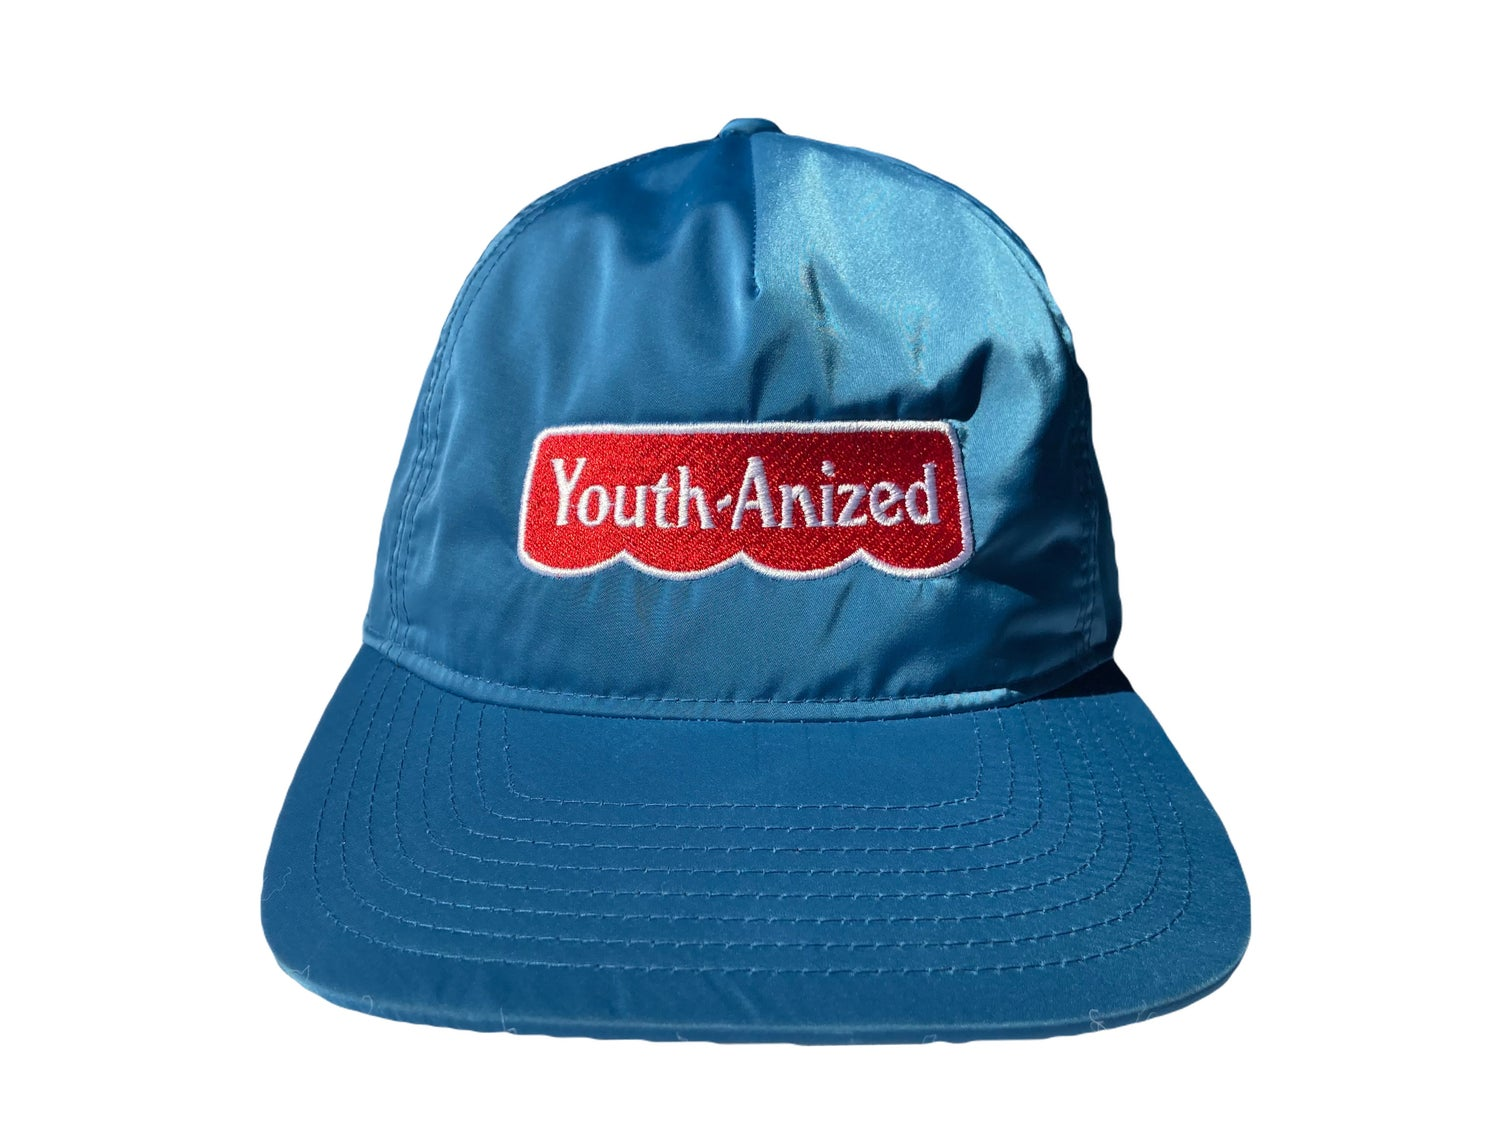 Image of Youth-Anized Hat